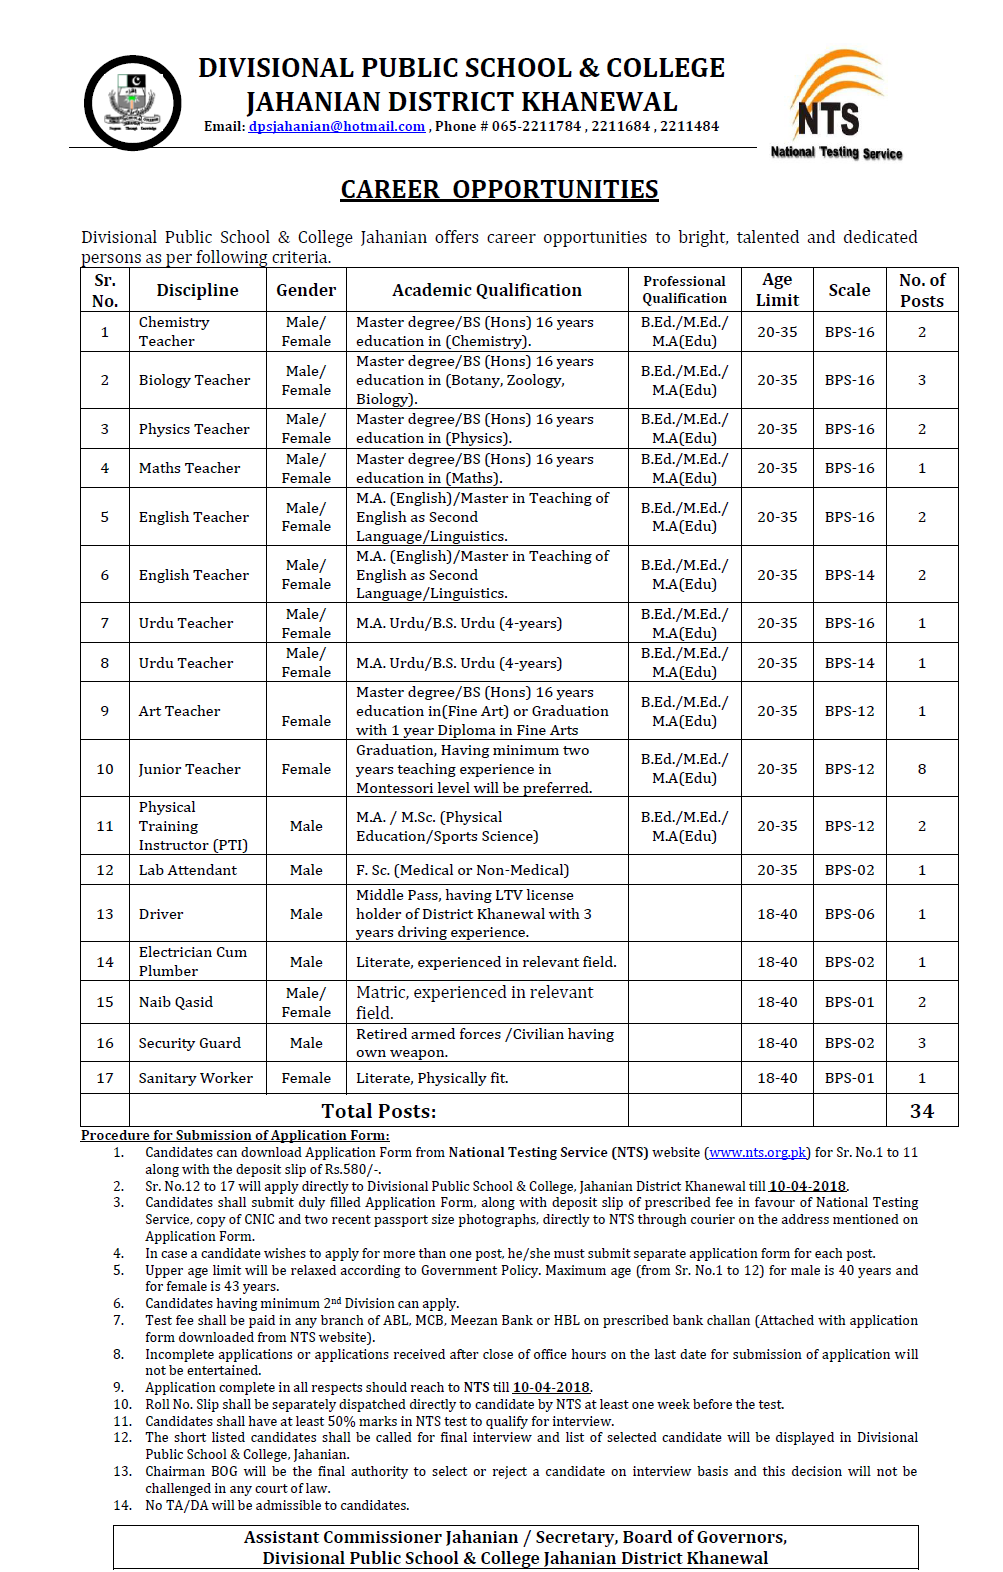 Divisional Public School And College Jahanian Khanewal JObs NTS Screening Test 2021 Application Form Challan Fee Slip